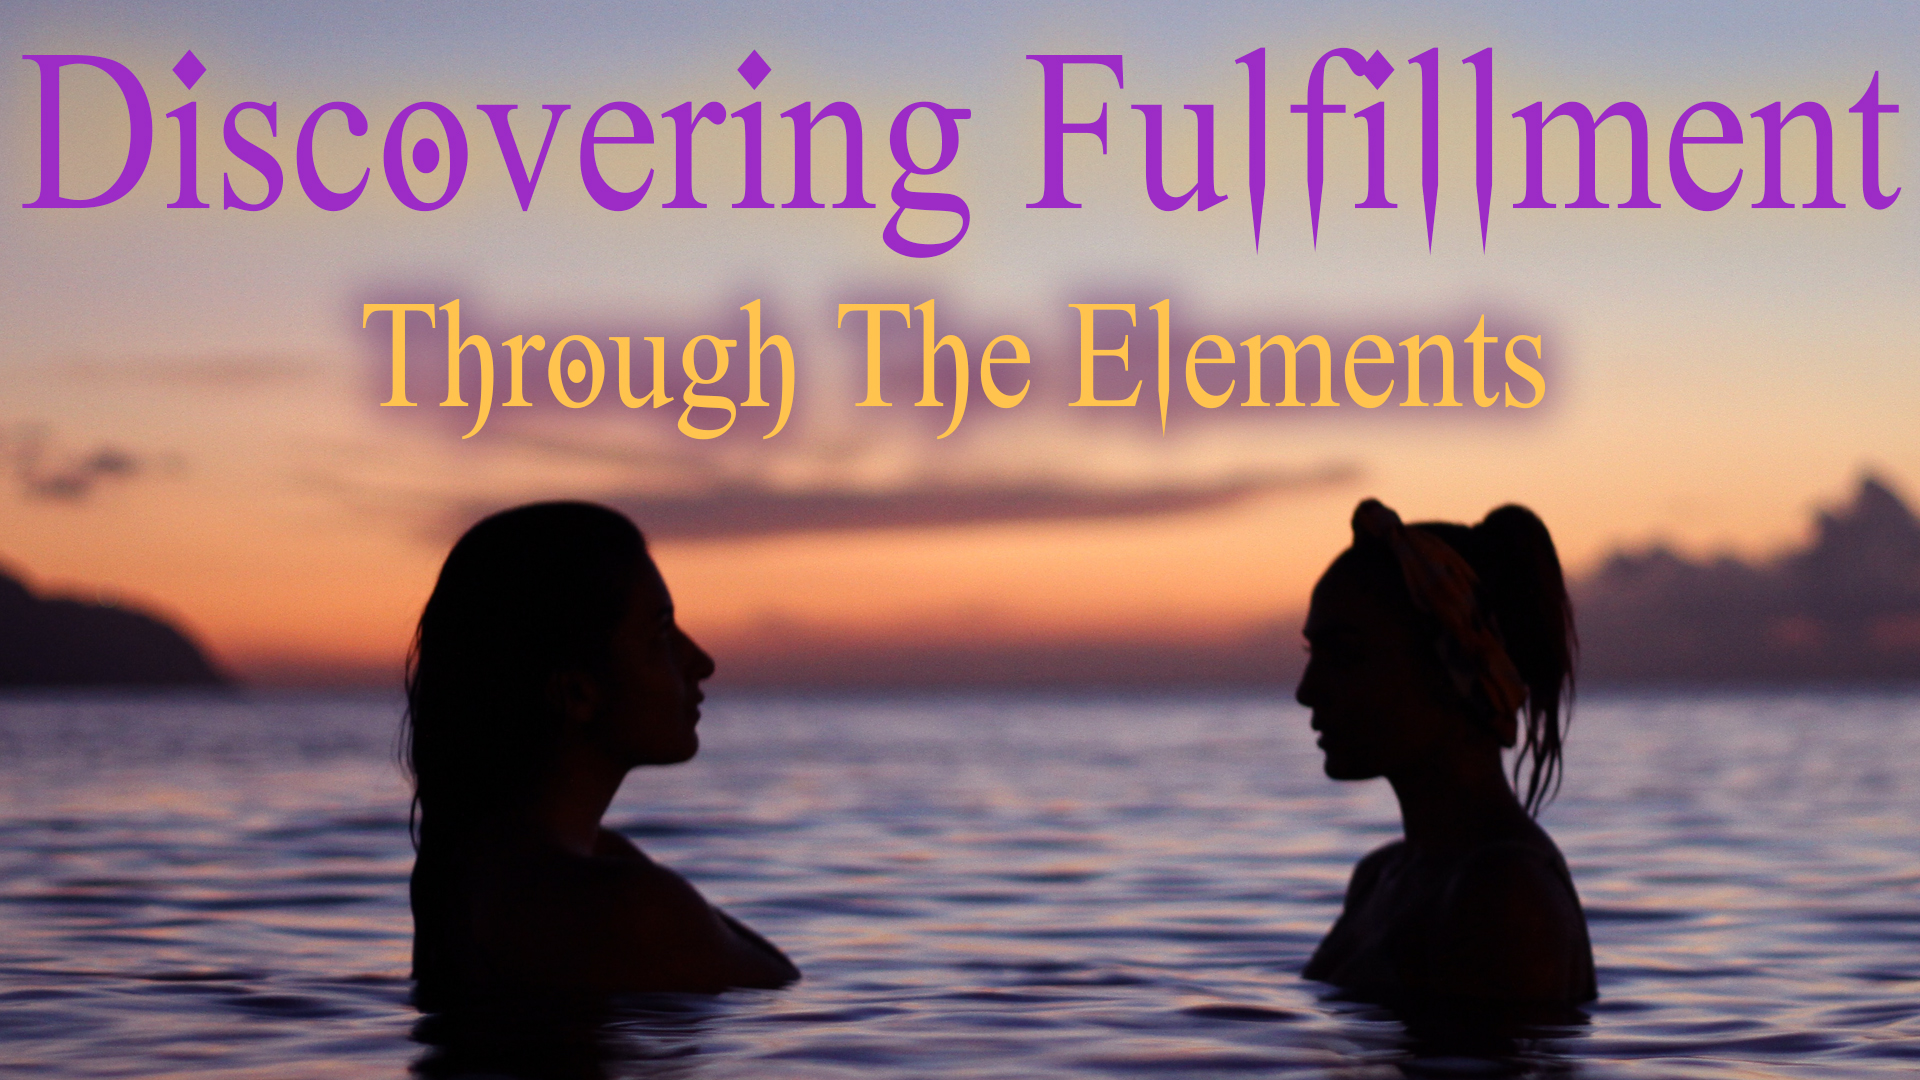 fulfillment-banner